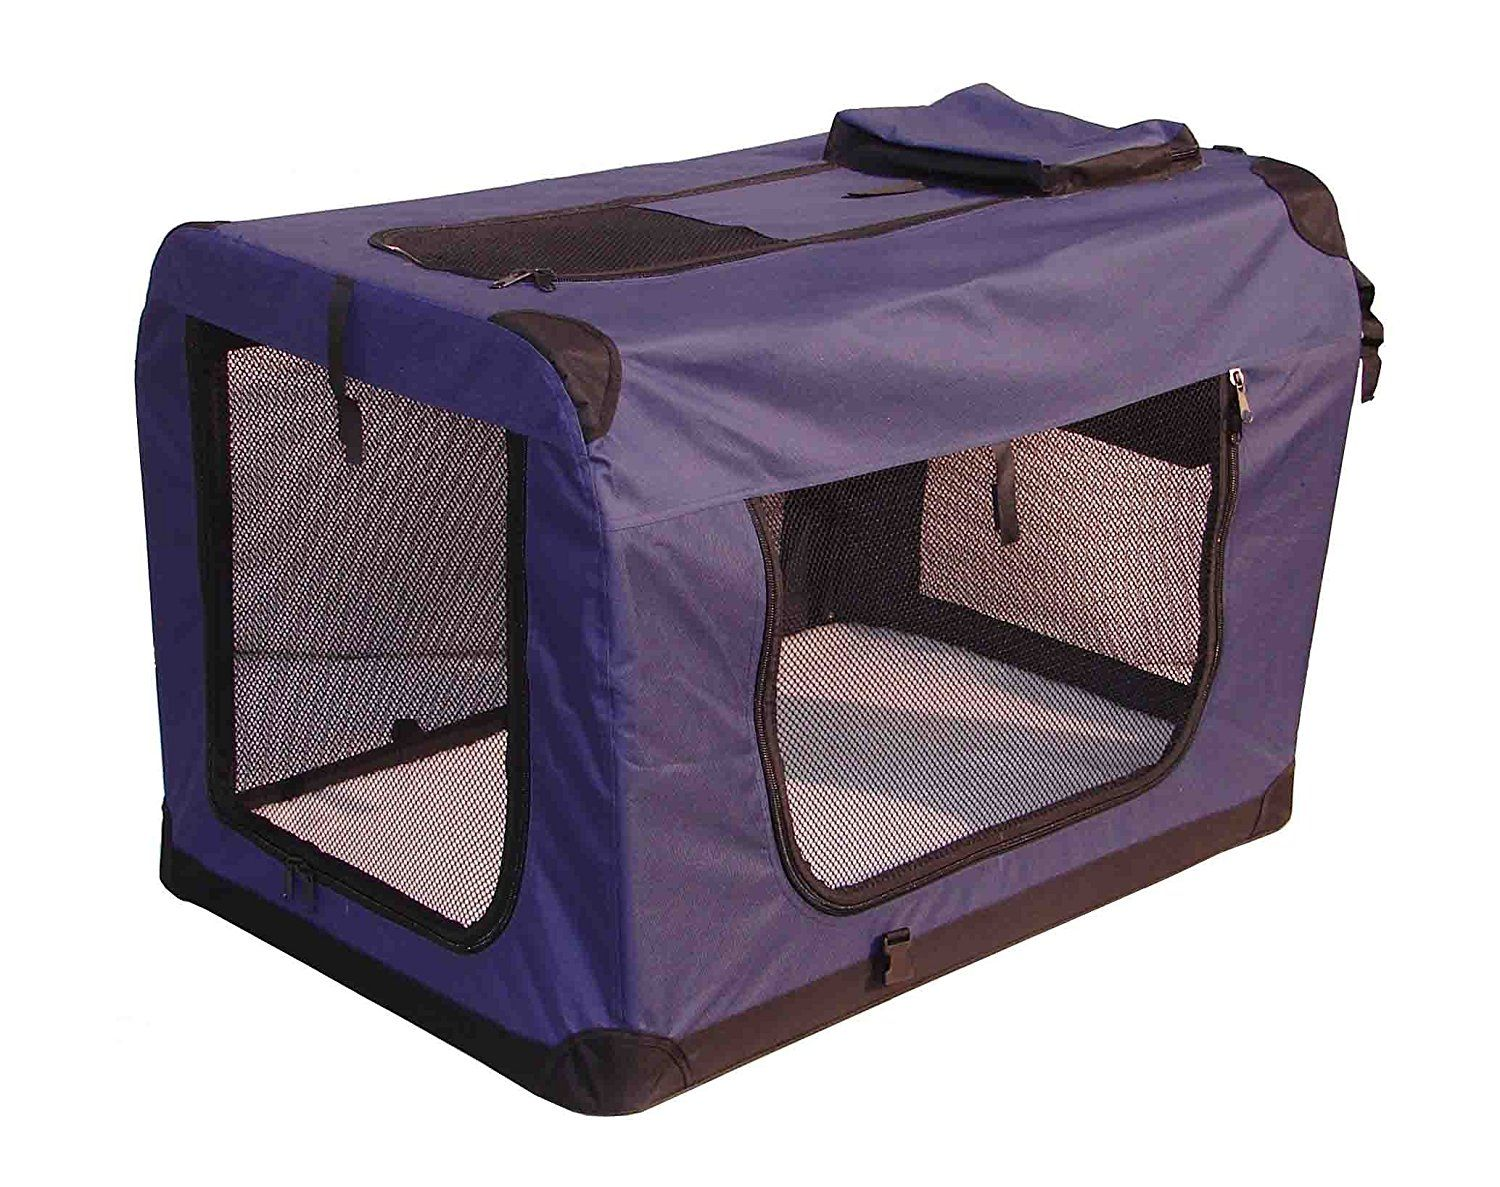 Pet Dog Carrier Portable House Soft Sided Cat Comfort Travel Tote